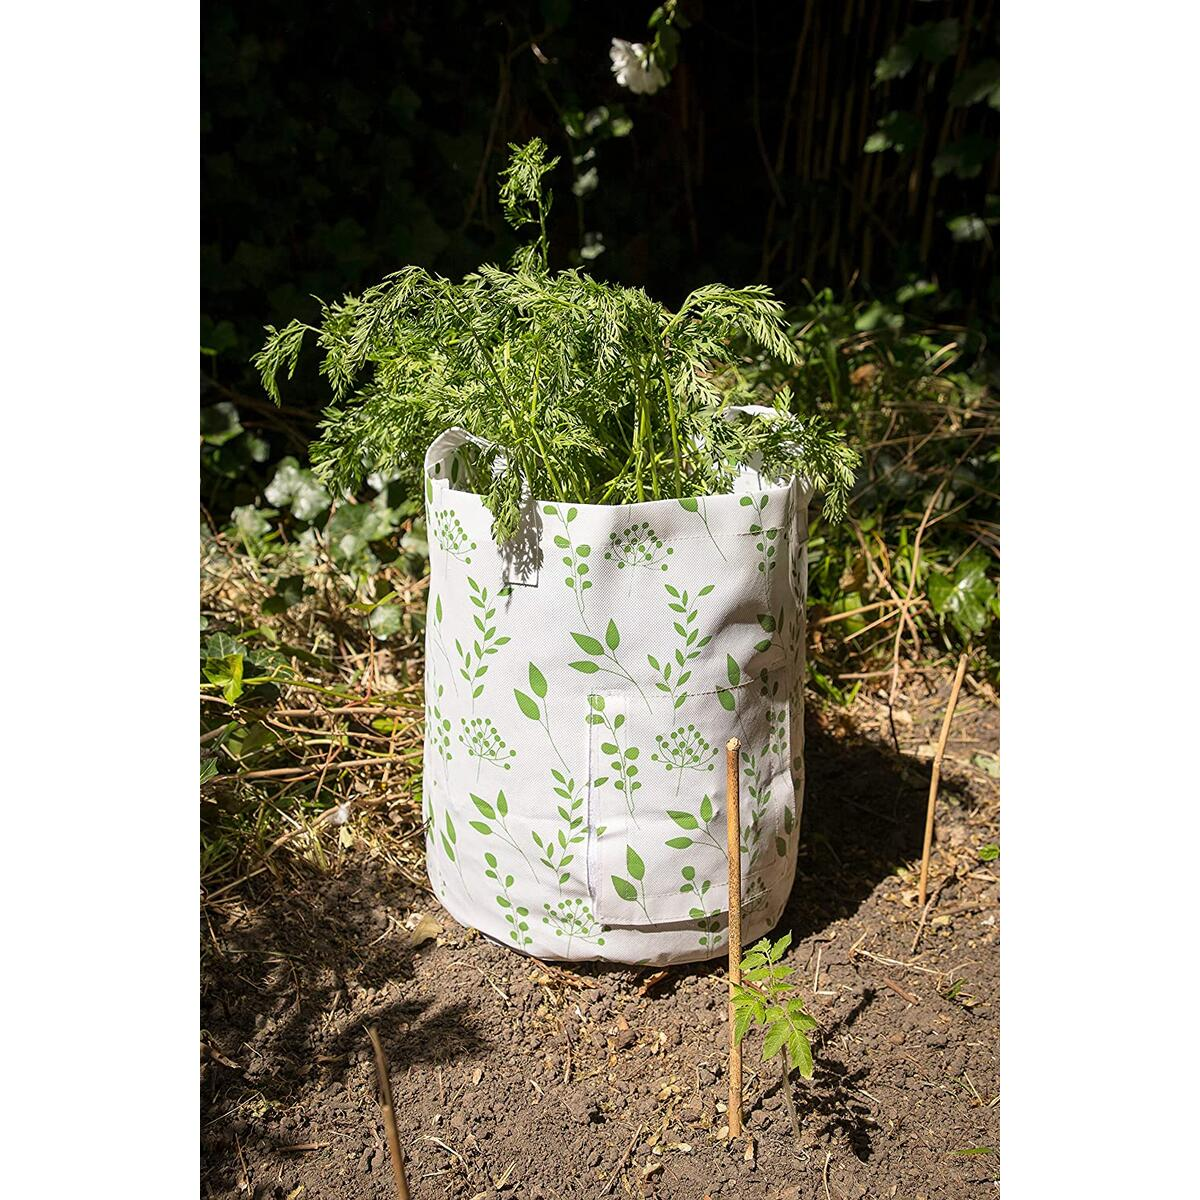 The Light Design Grow Bags 7 Seven gallons Pack of 3, Fabric planters Grow Bags for Vegetables, Potato, Tomato or Carrot Planter for Garden or Patio with Access Flap to The Roots…